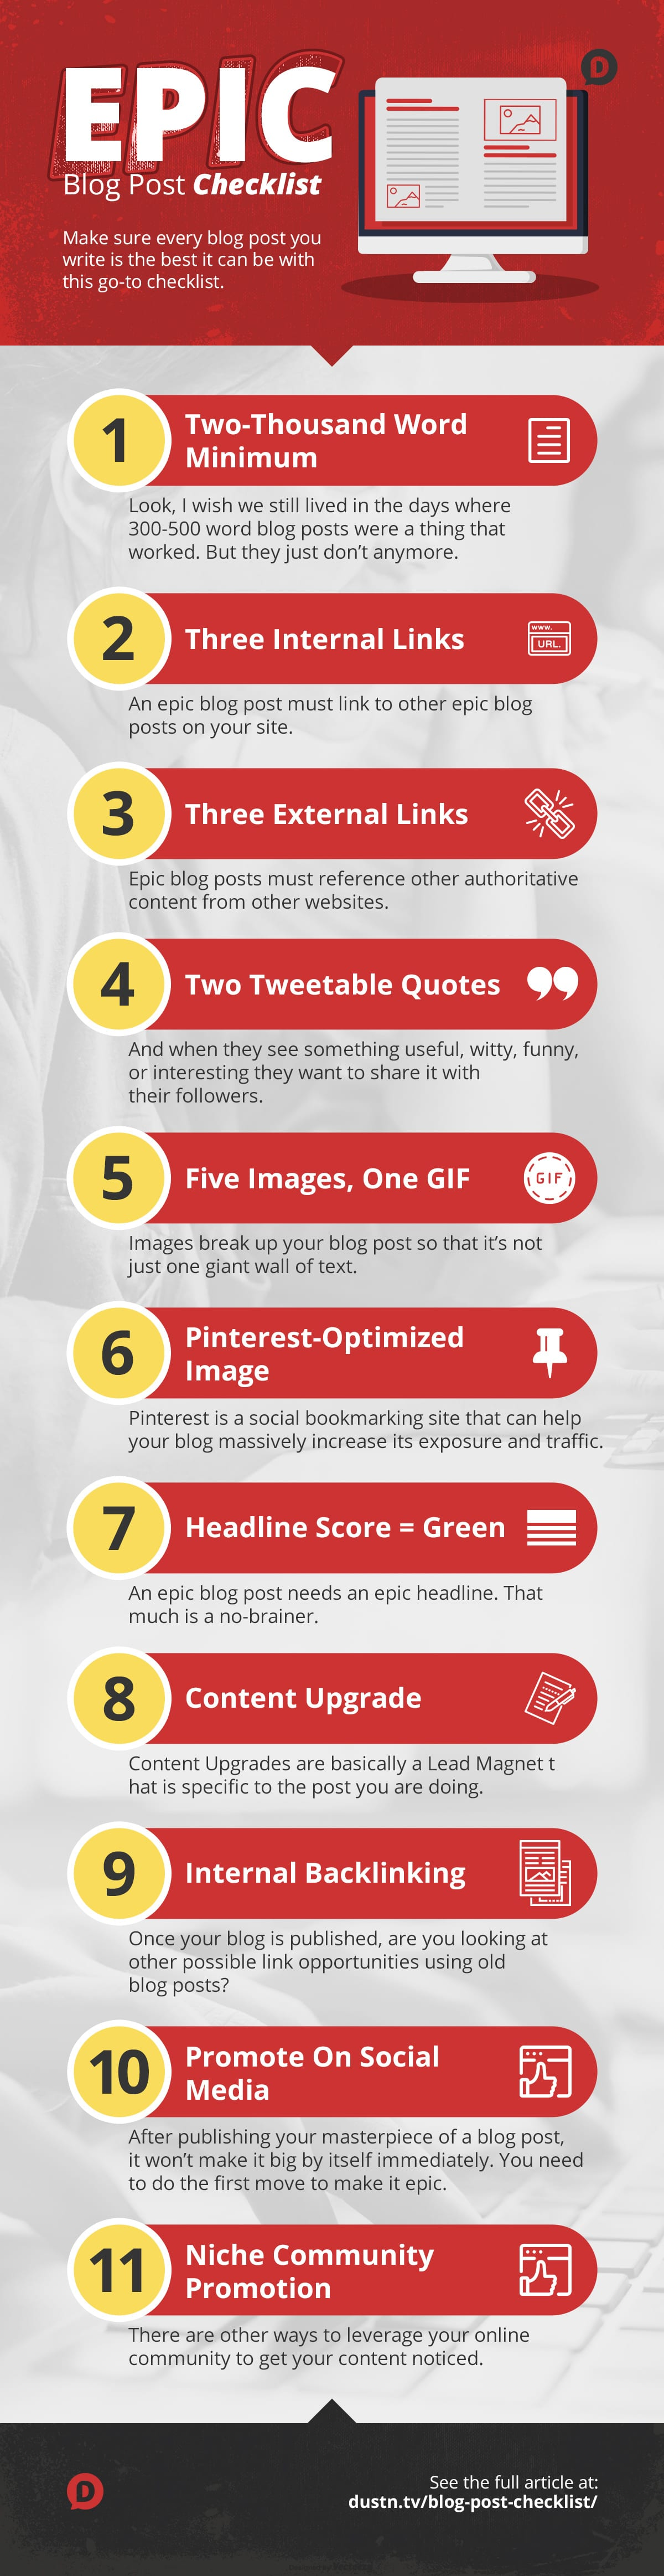 Blog post checklist infographic